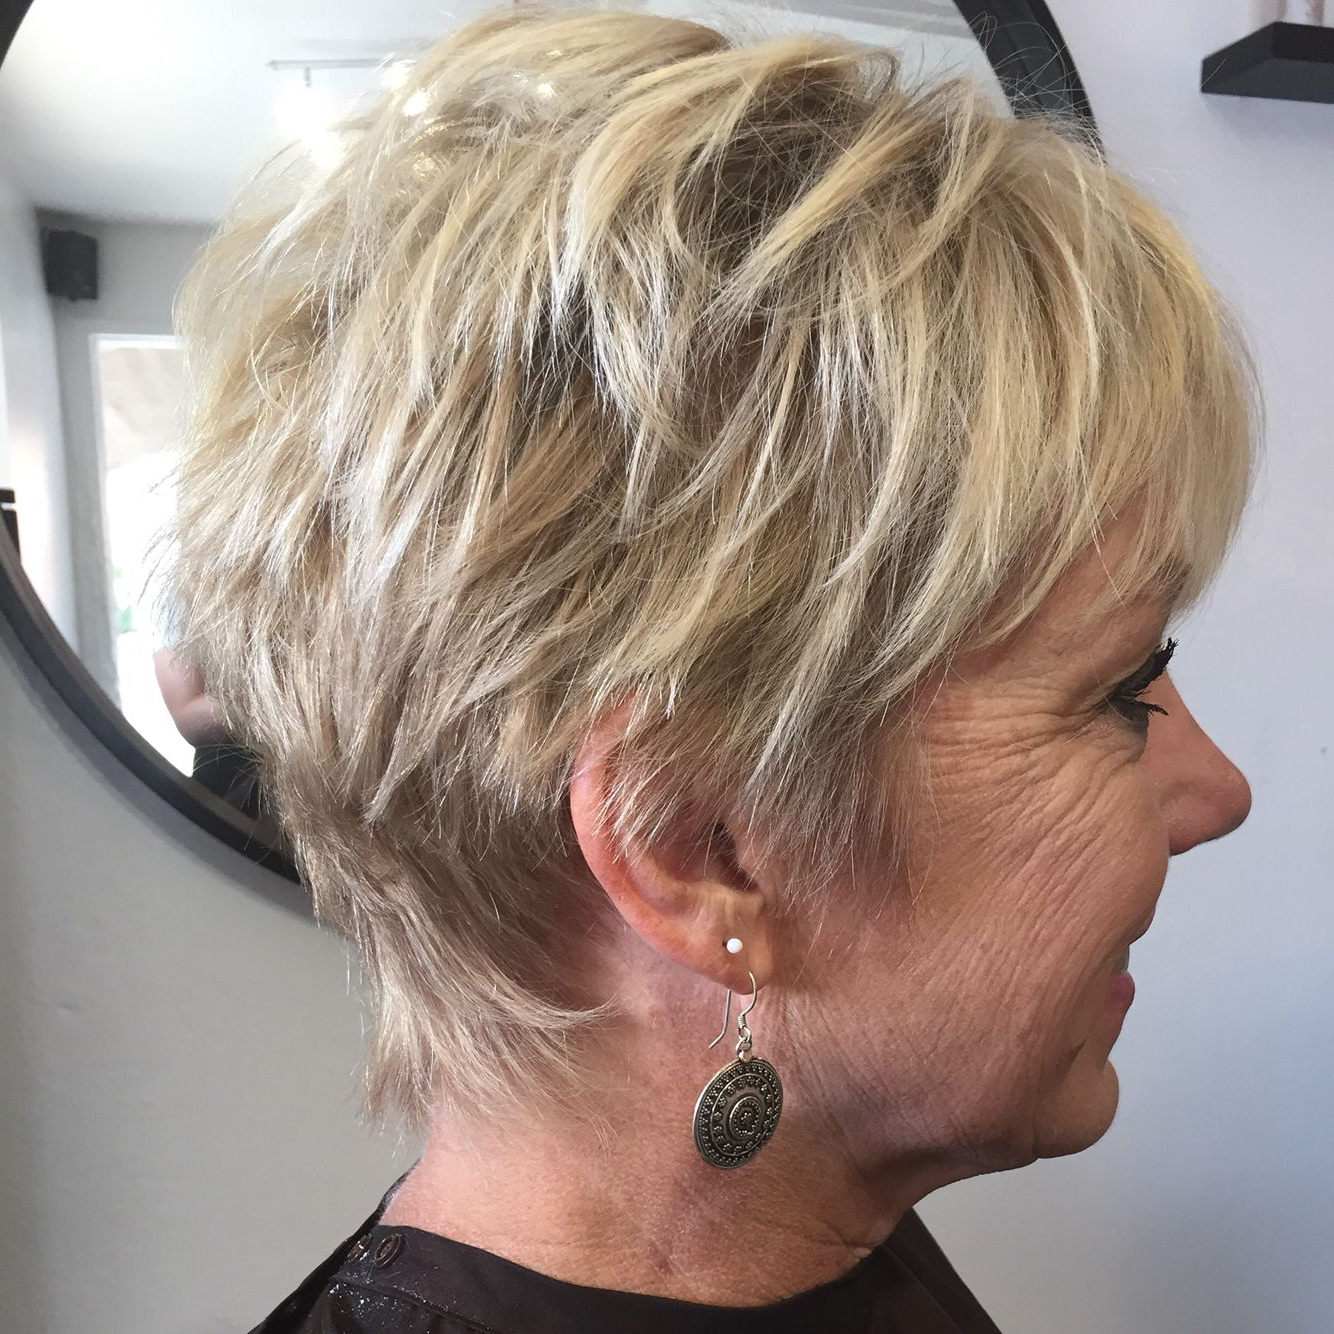 Short Blonde Pixie Cut, Short Hair With Highlights, Short Hair With Pertaining To Short Ruffled Hairstyles With Blonde Highlights (View 3 of 20)